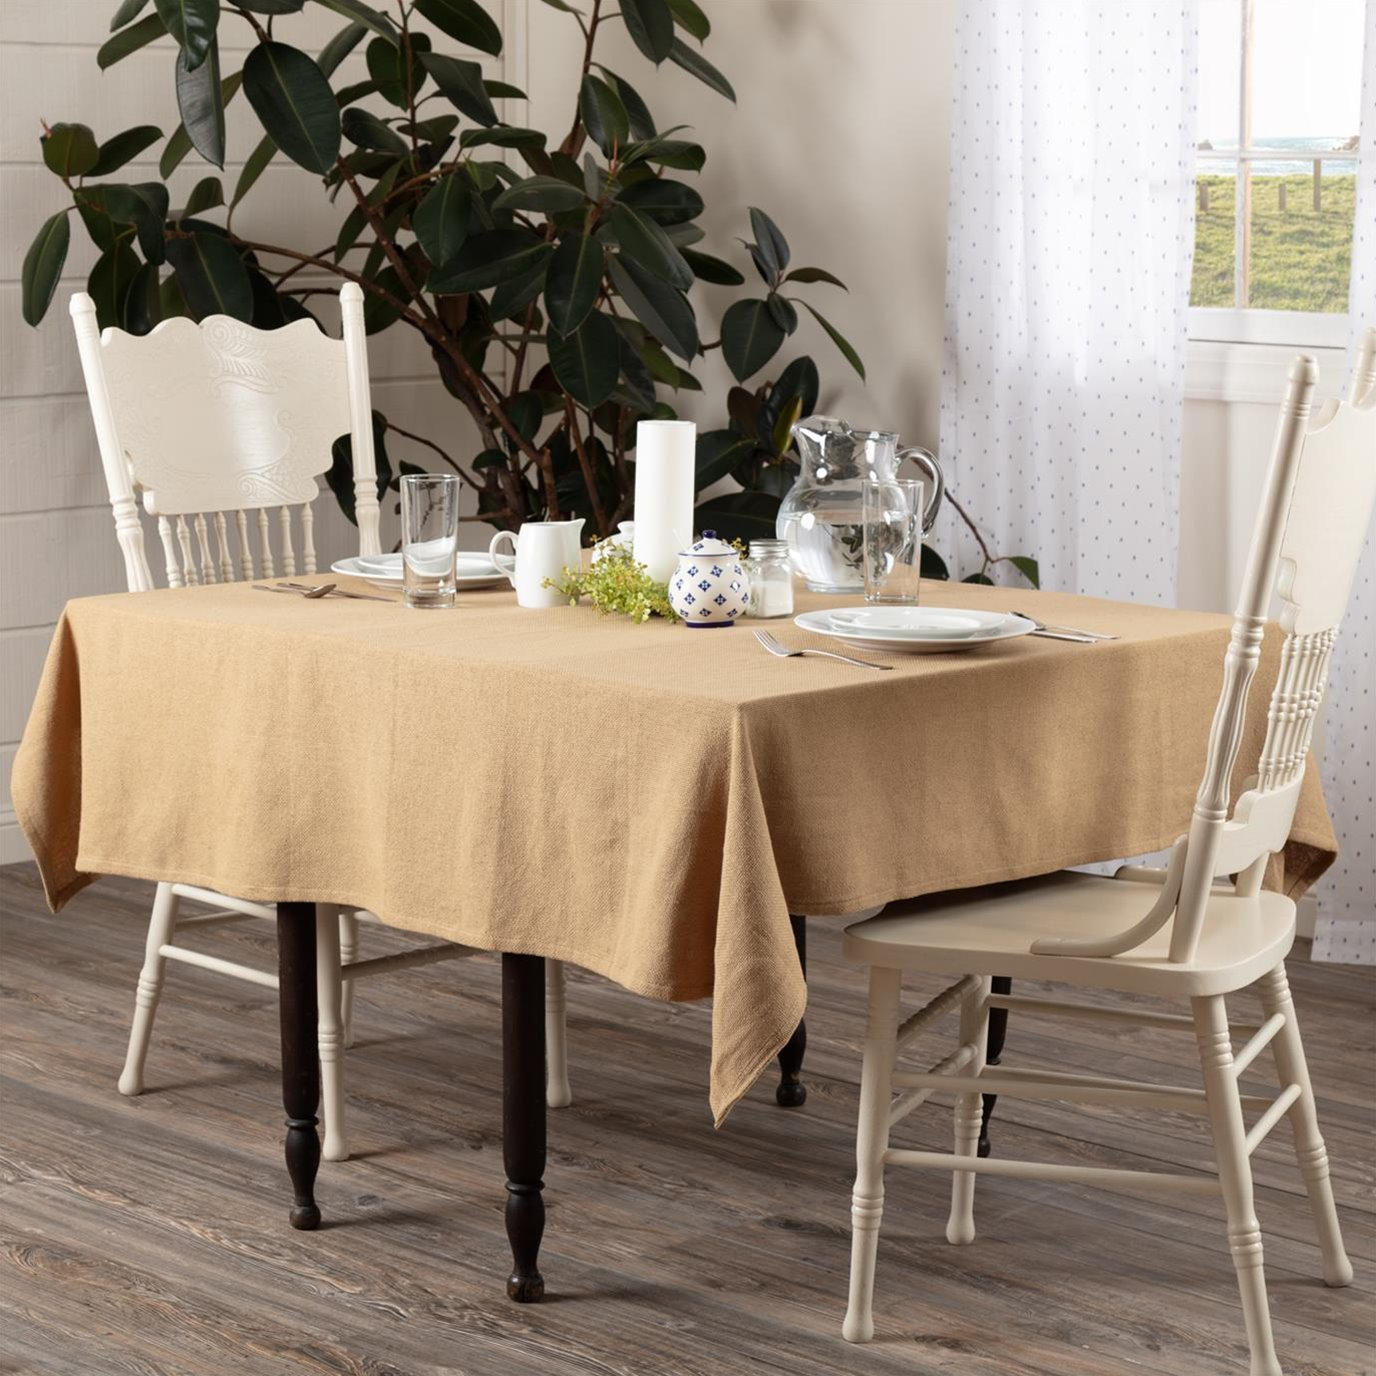 Burlap Natural Table Cloth 60x60